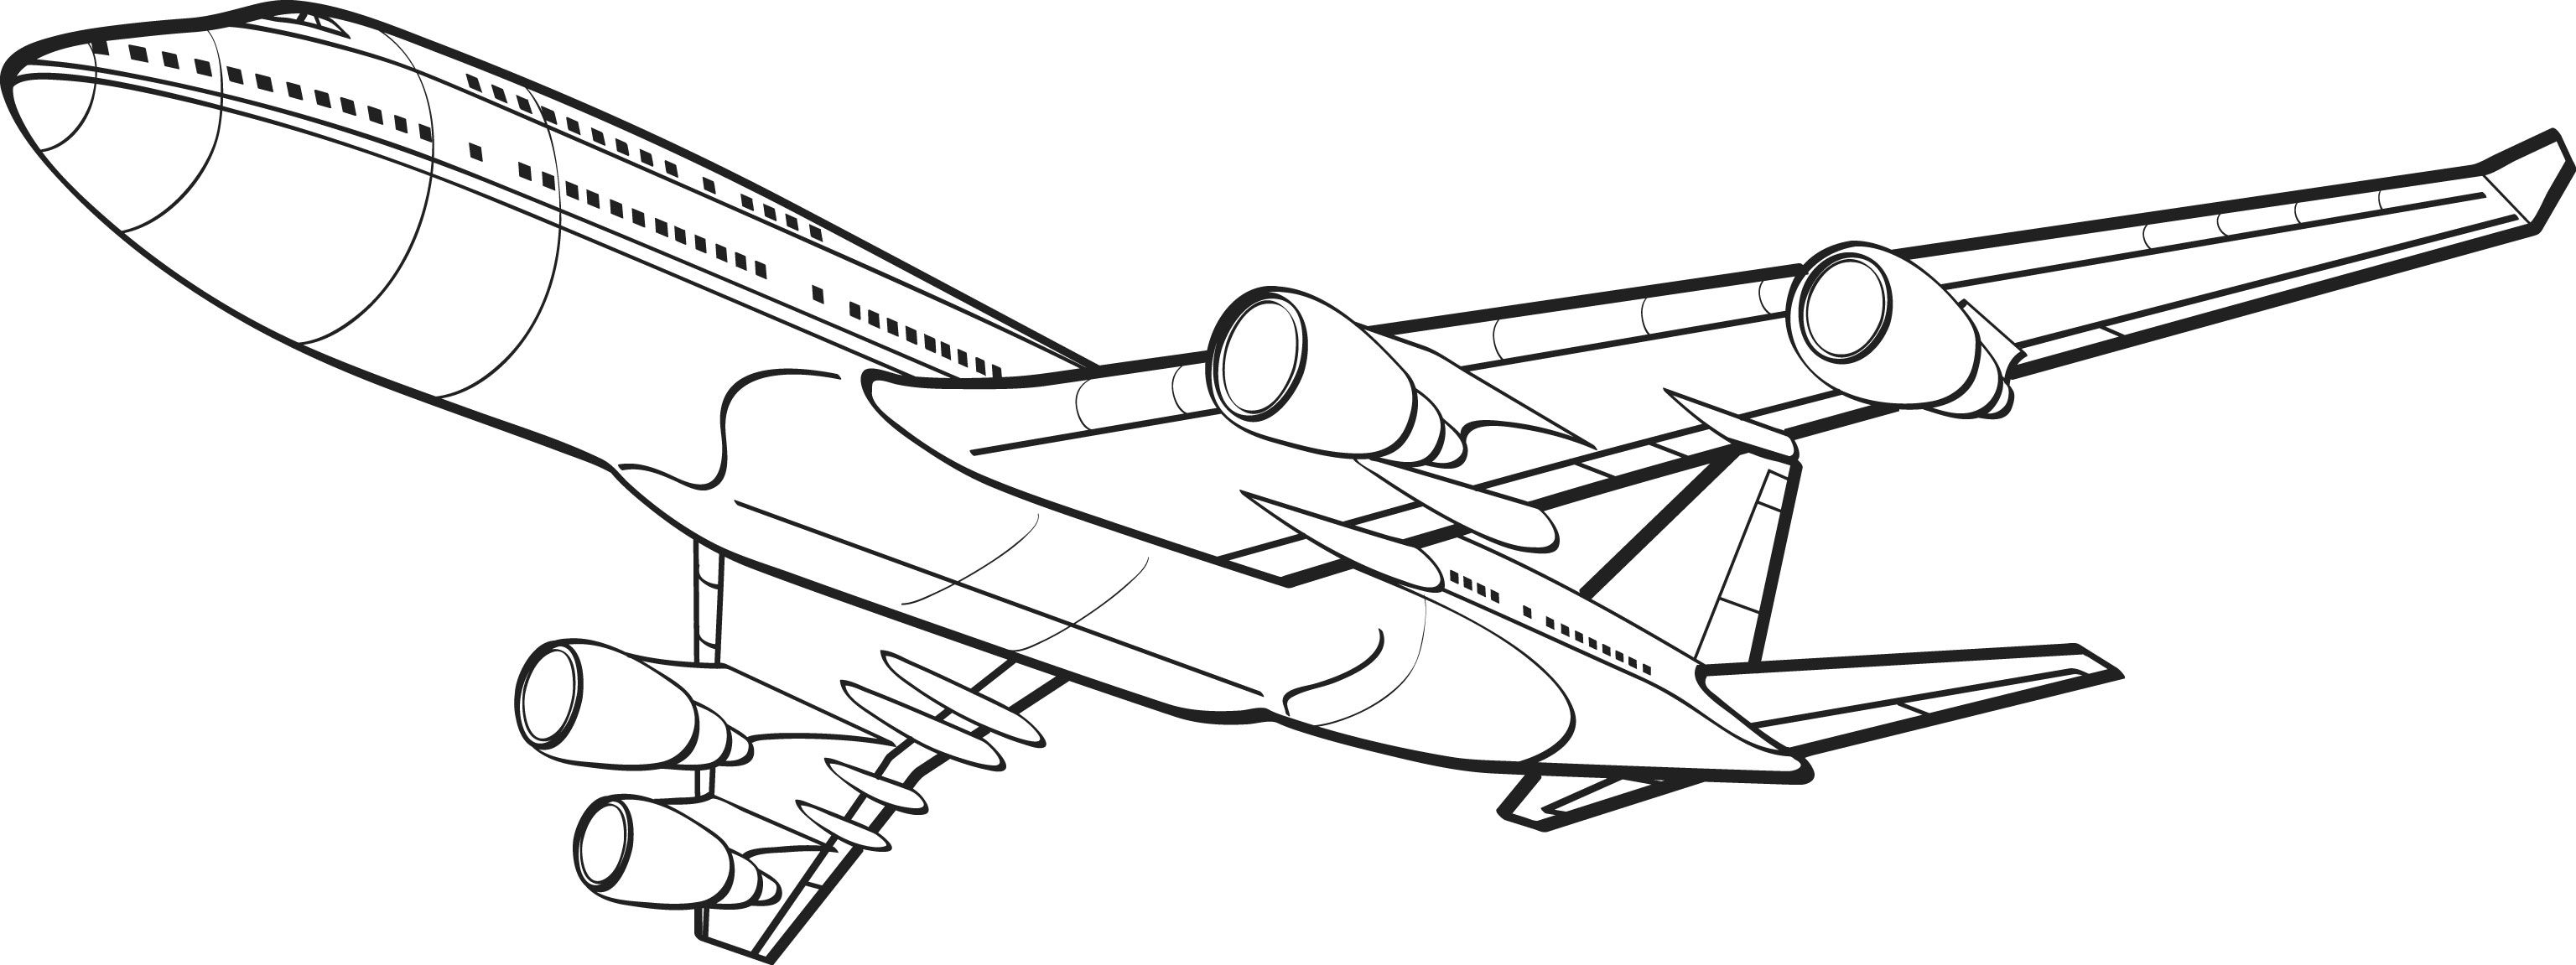 boeing 777 coloring page boeing 747 400 coloring page free printable coloring pages boeing 777 coloring page